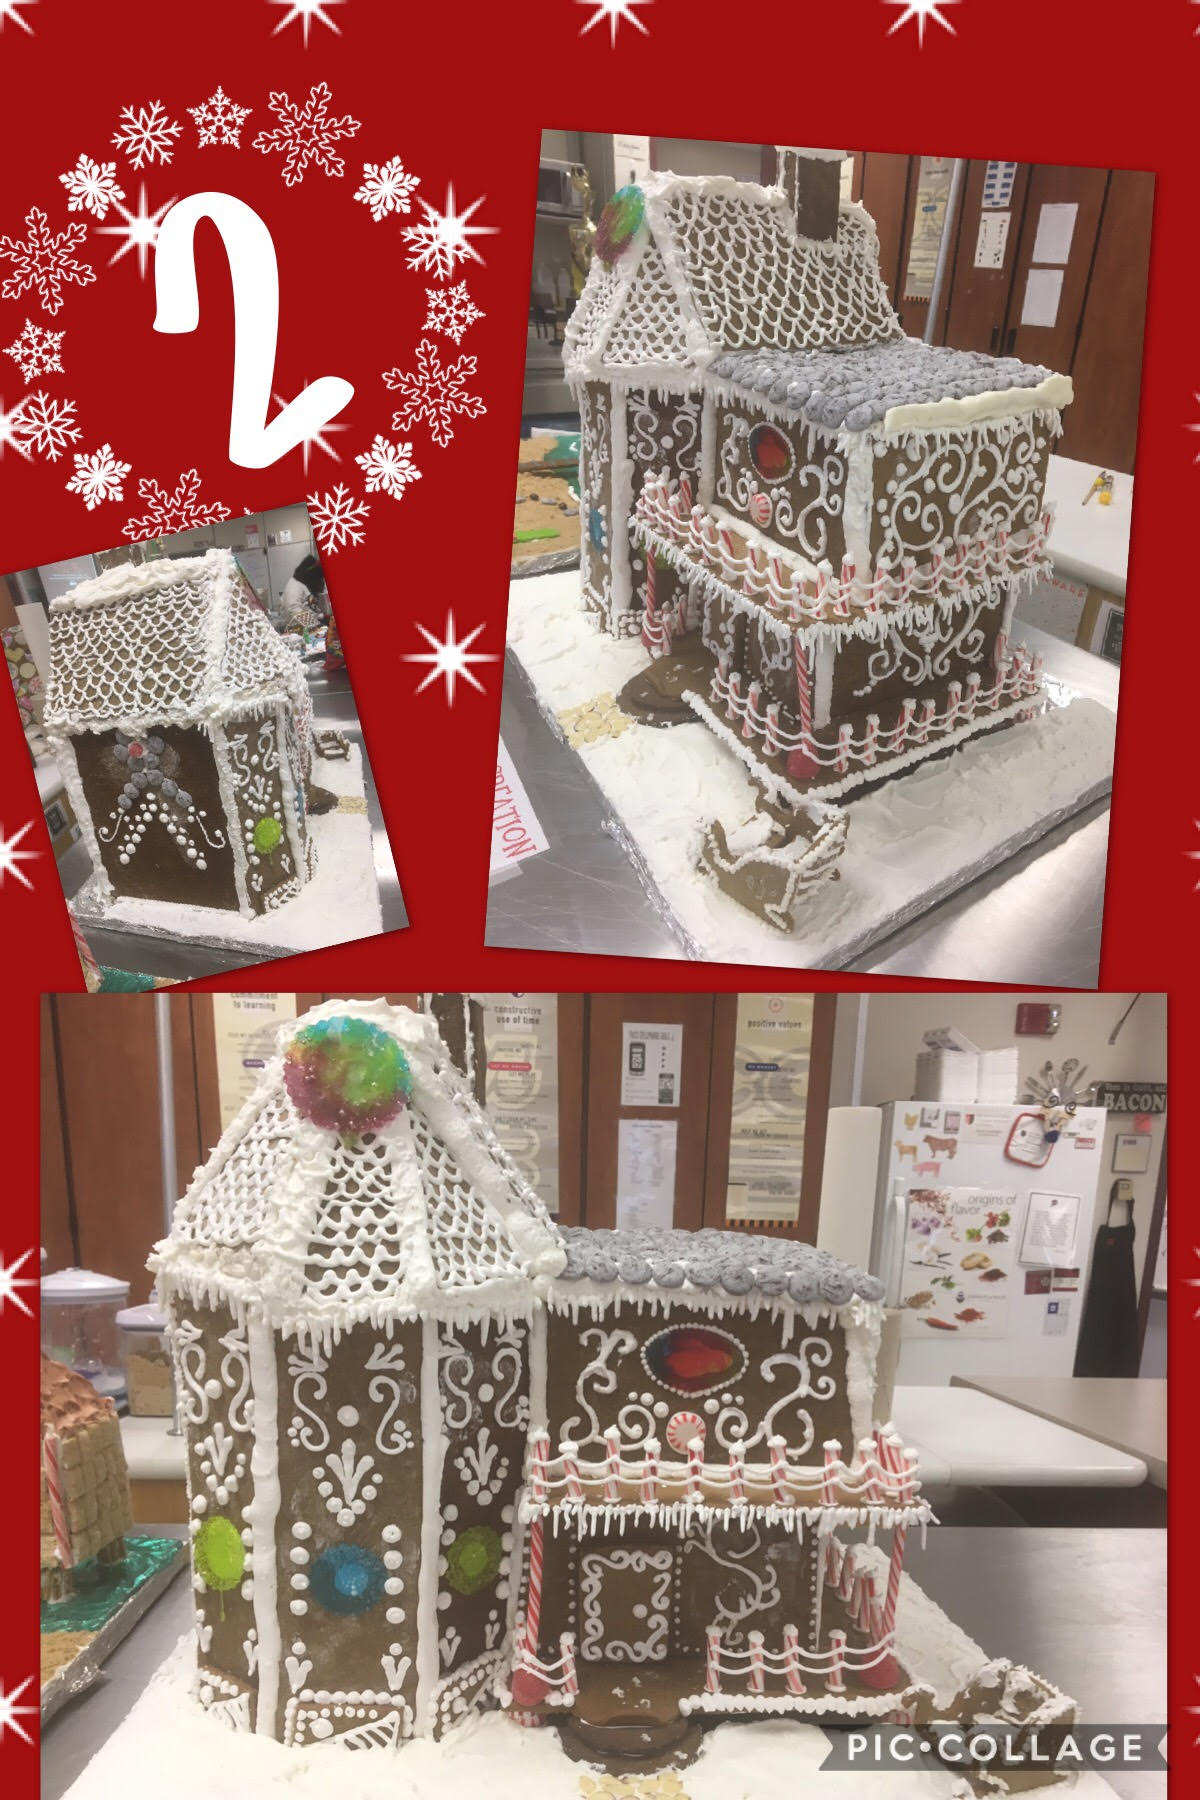 Congrats Maddie Fullerton, Emily Jerovetz, Caitlyn Mattmiller & Autumn Wood- Winners of 2016 Gingerbread Creations! #RaiderStrong @PCSD_PHS https://t.co/HR5kaV76lP